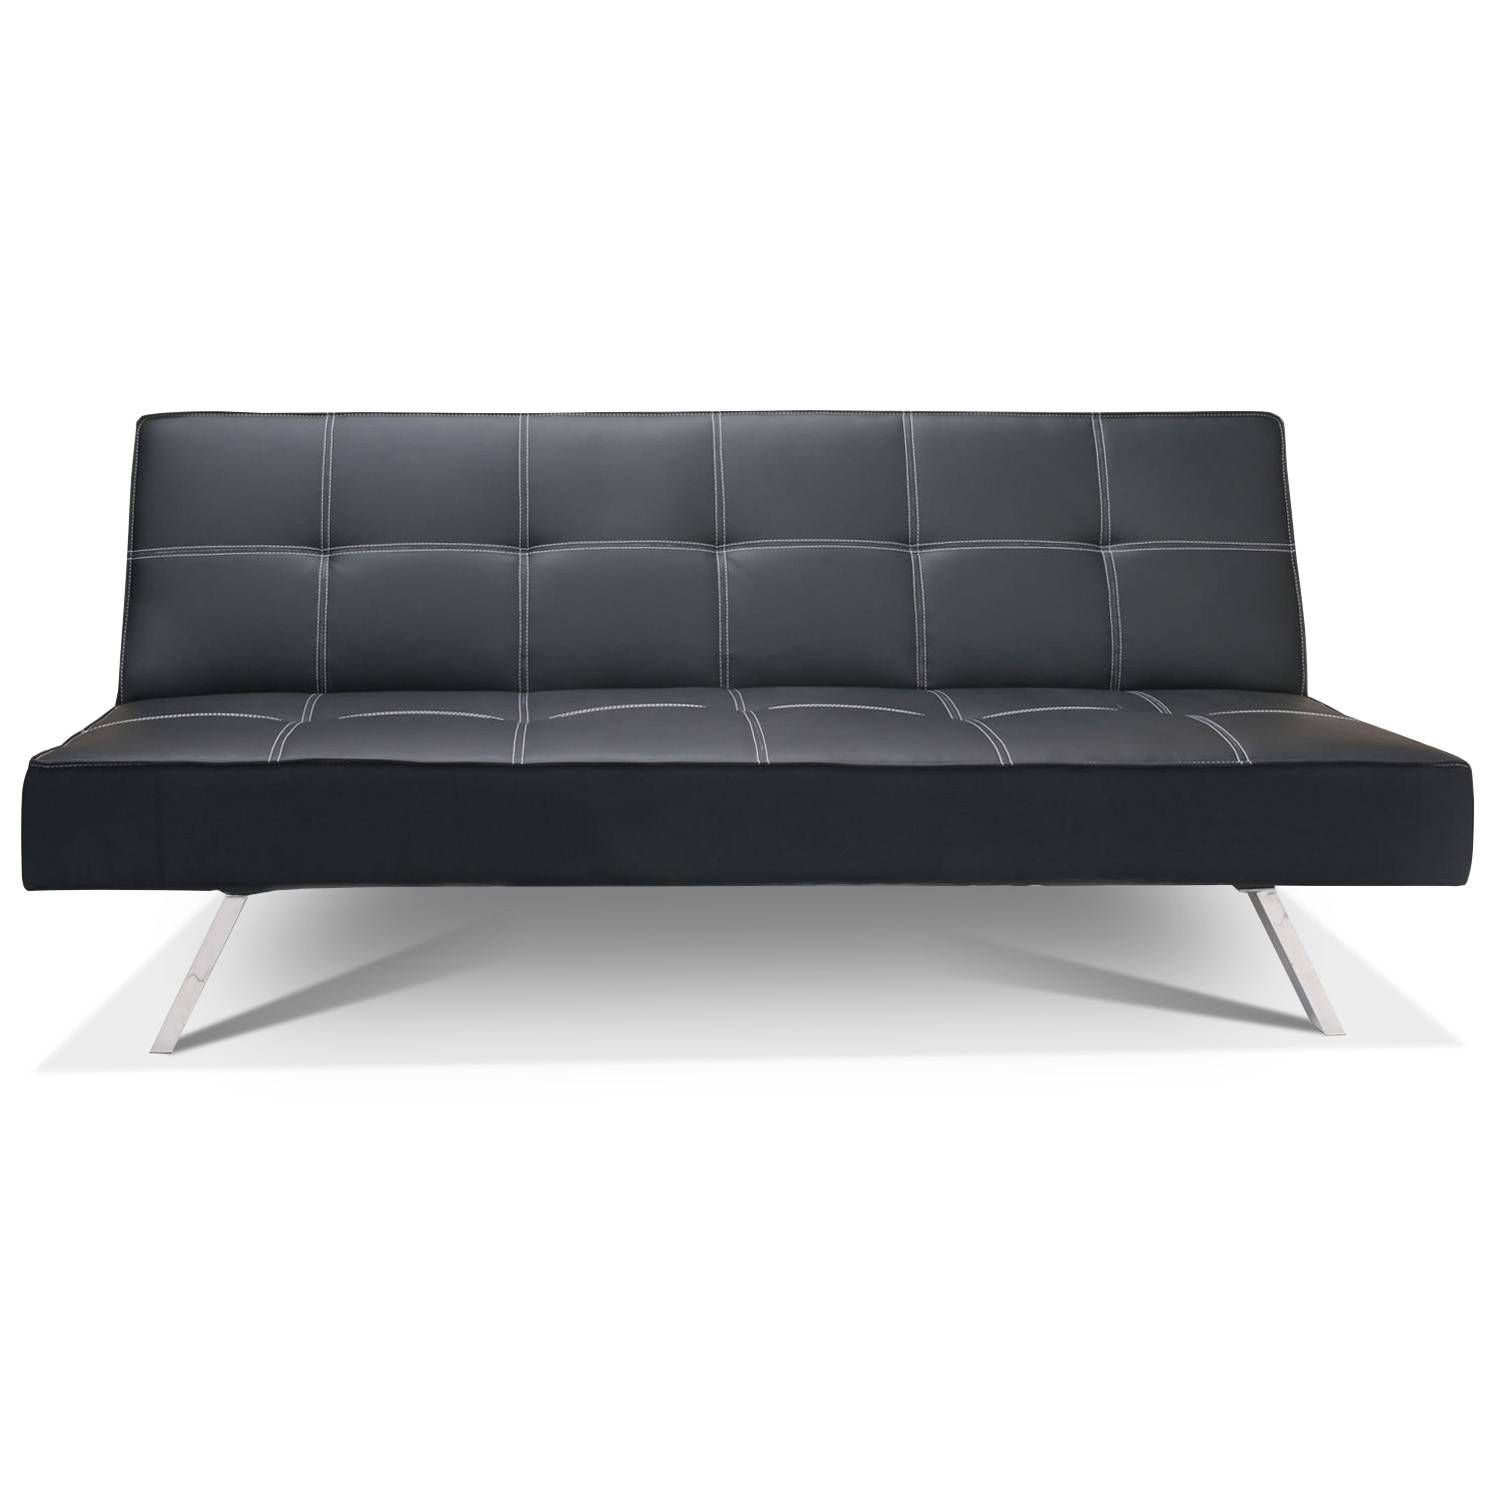 Furniture: Fabulous Faux Leather Futon For Living Room Decor intended for Cheap Sofa Beds (Image 12 of 30)